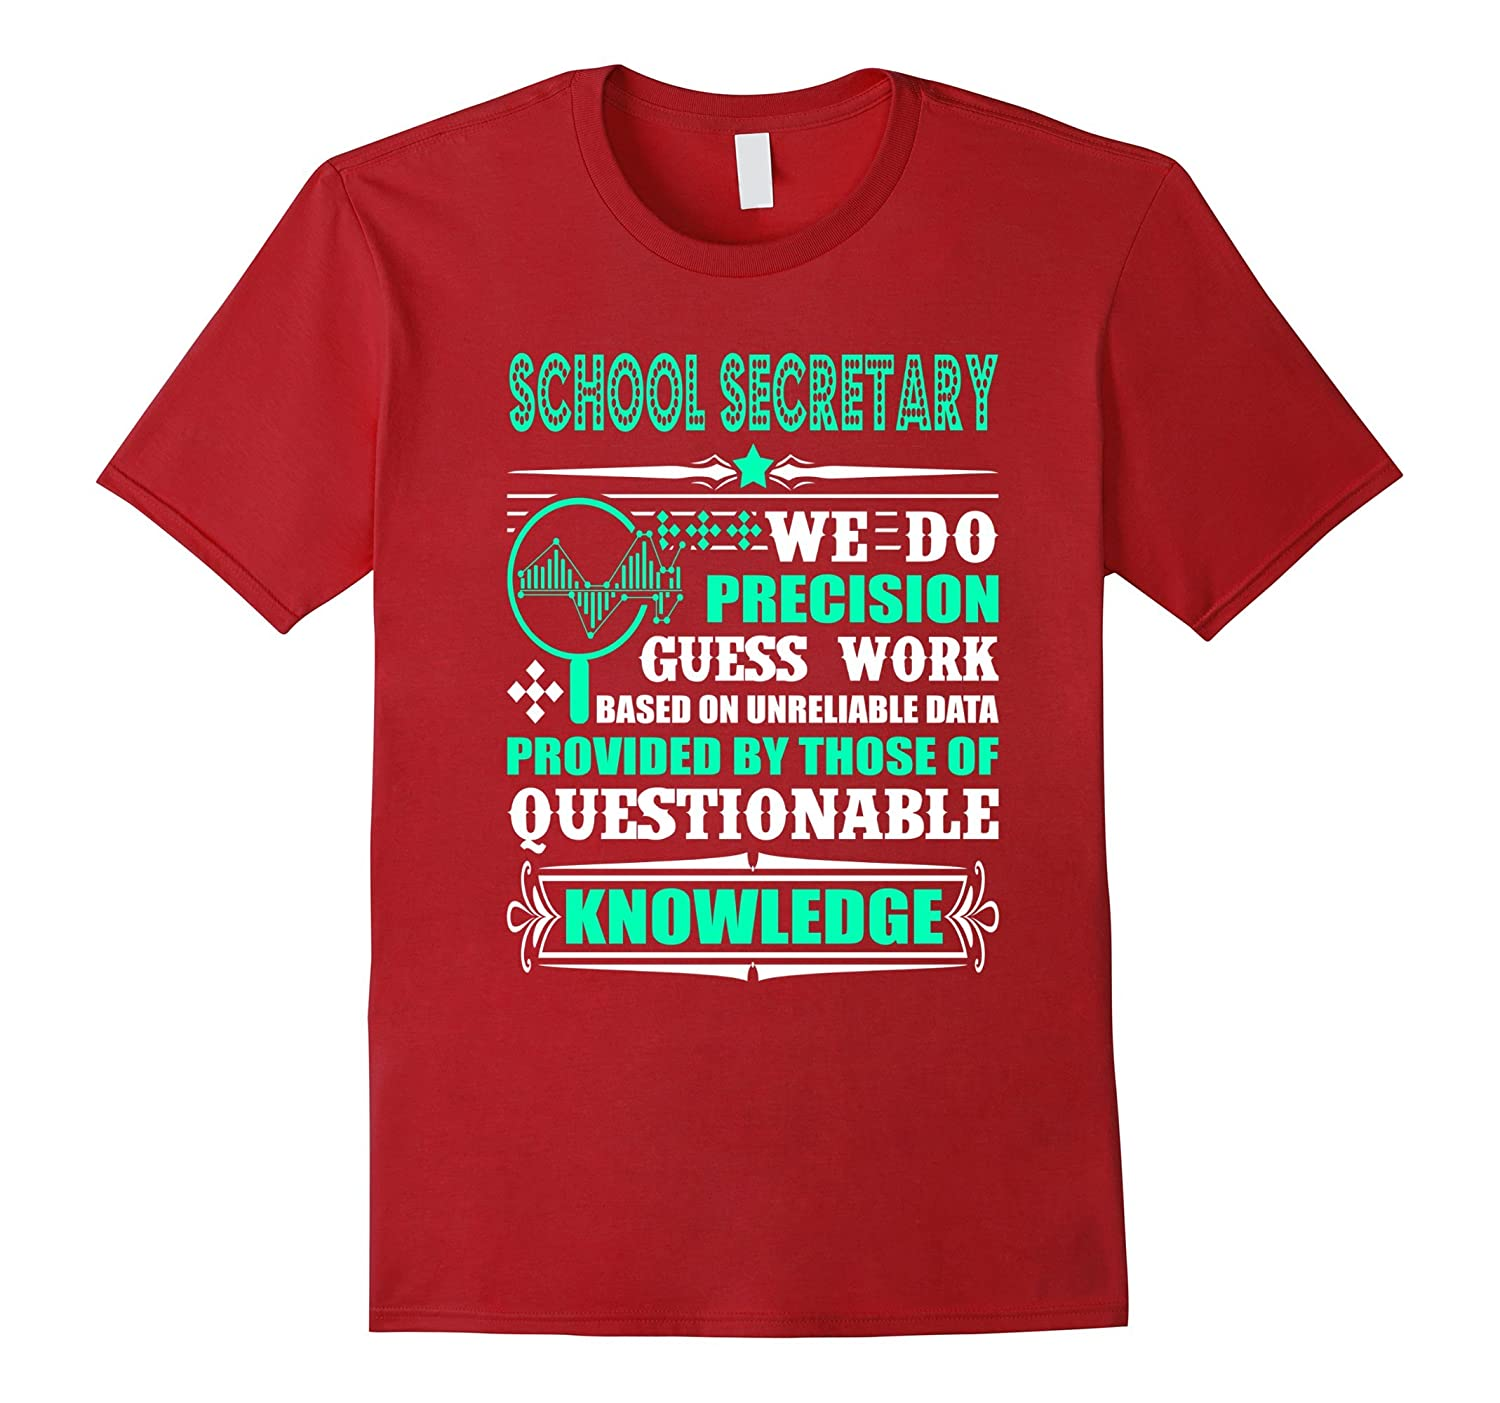 School Secretary Shirt For Women And Men